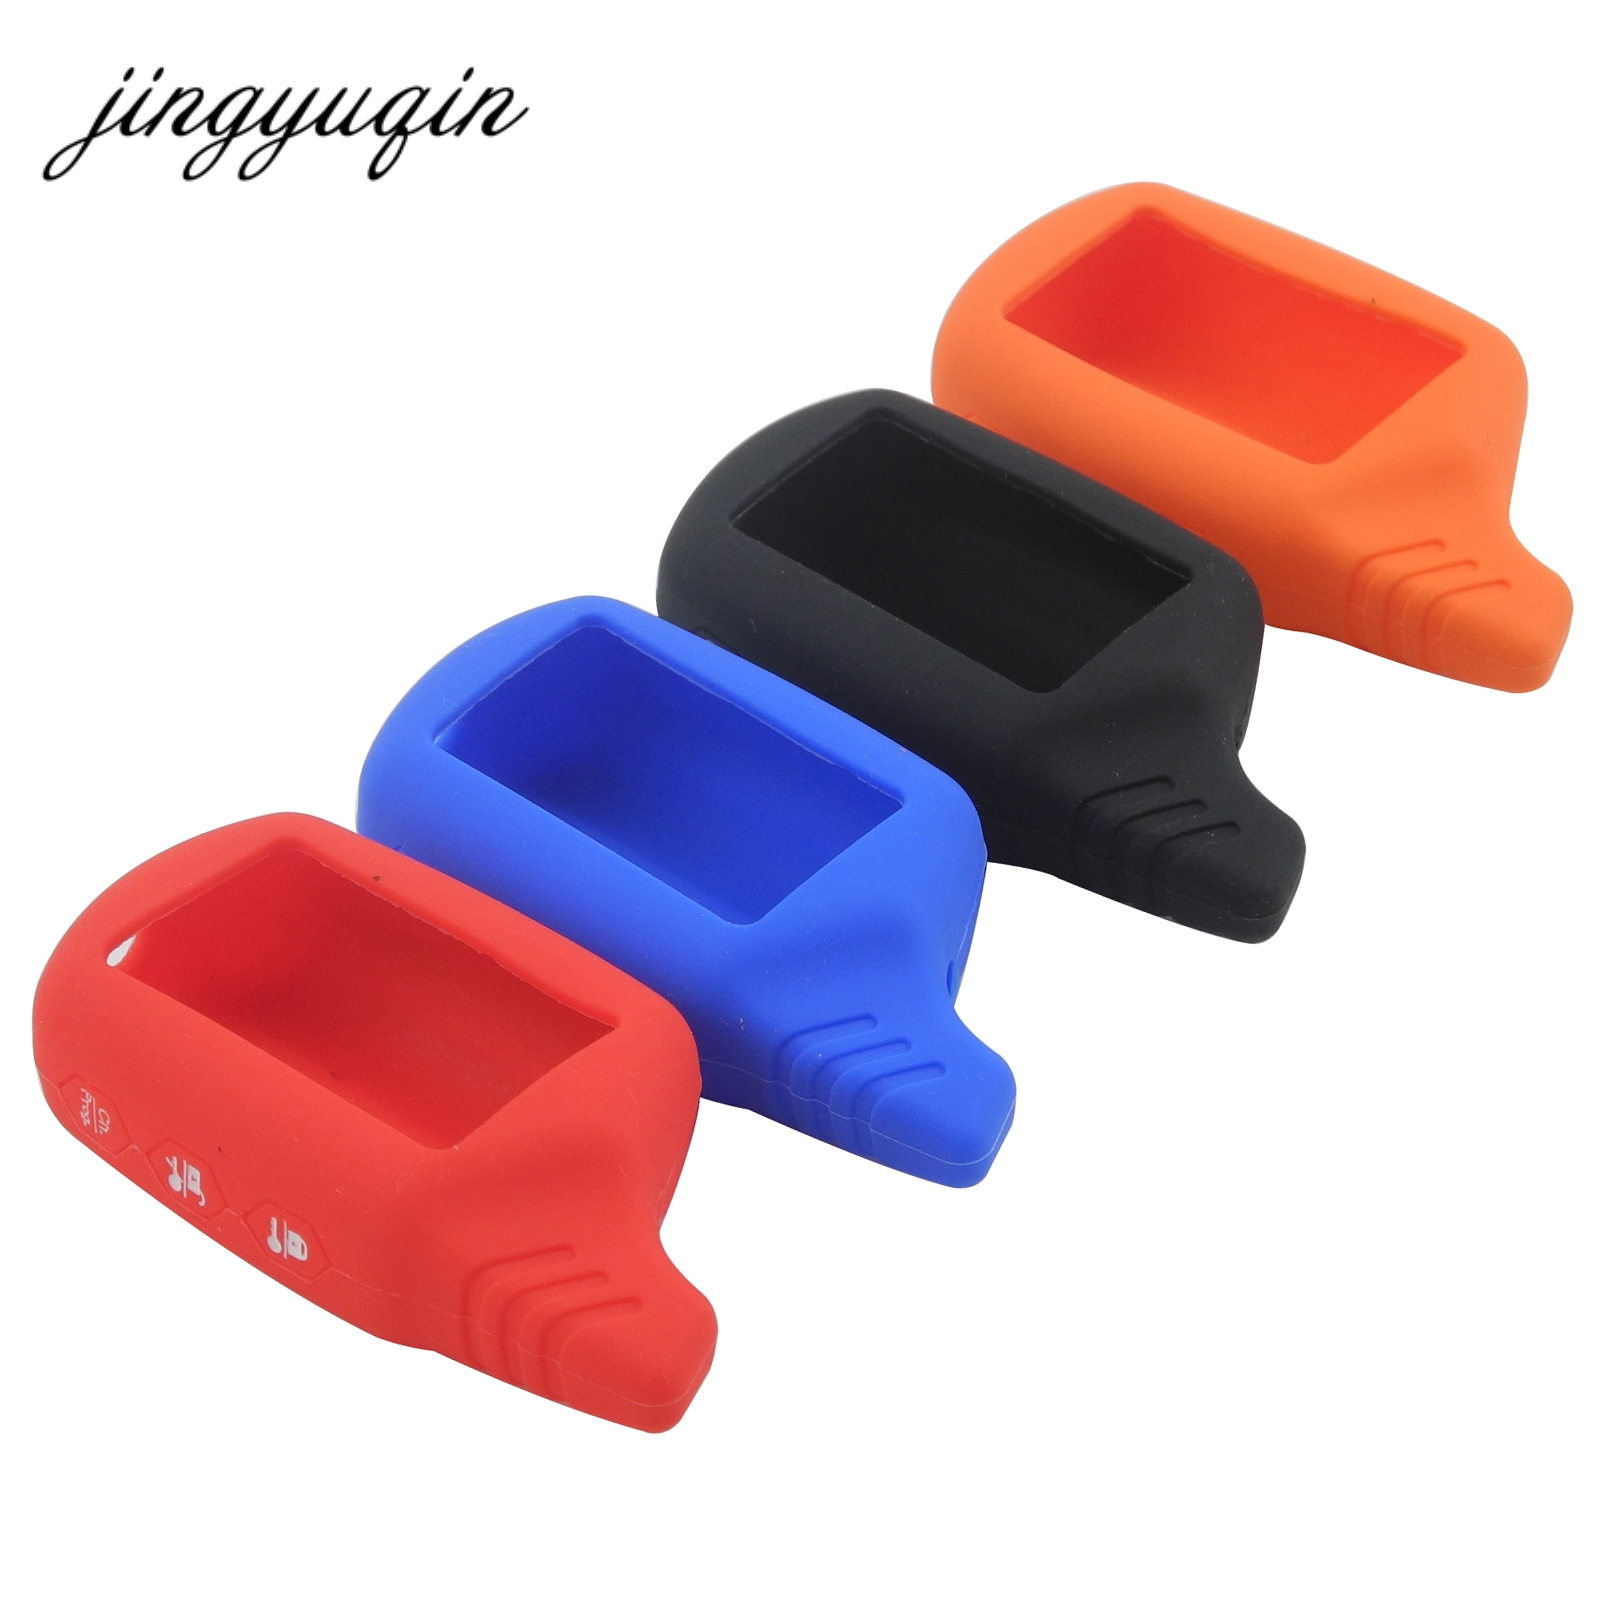 Jingyuqin Key Cover B9/B6 Silicone Case For Starline B91/B61/A91/A61 KGB FX-5 Jaguar Ez-one LCD Keychain Car Remote 2 Way Alarm(China)